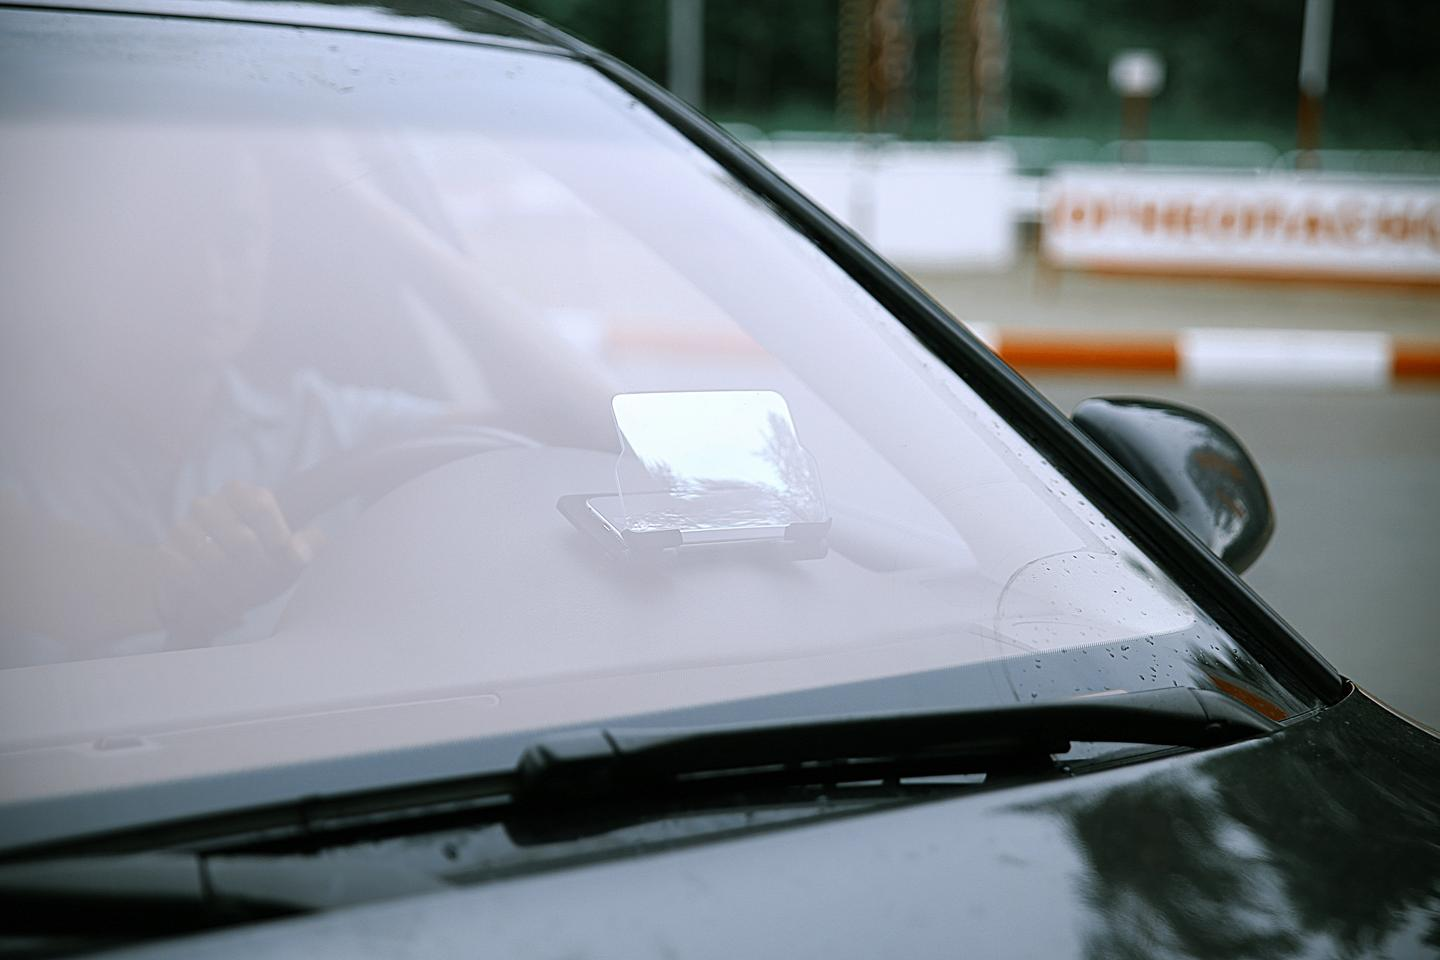 How the Hudway Glass looks from outside the car